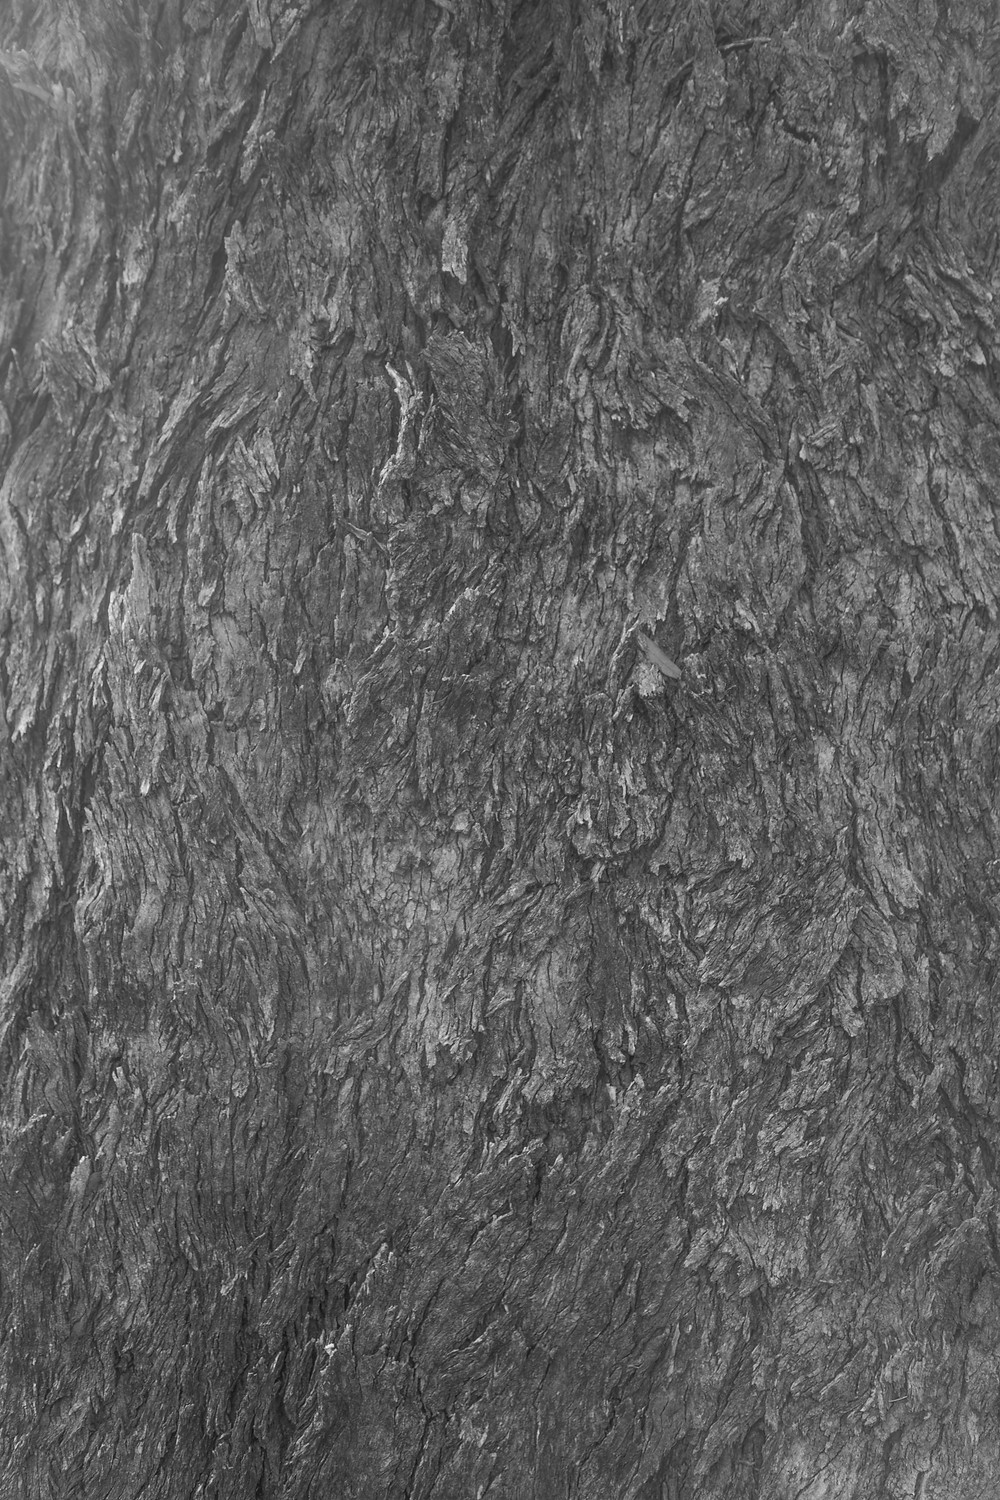 A black and white photograph of a Yellow Box gum tree in Canberra, Australia. Photograph taken by Megan Kennedy.